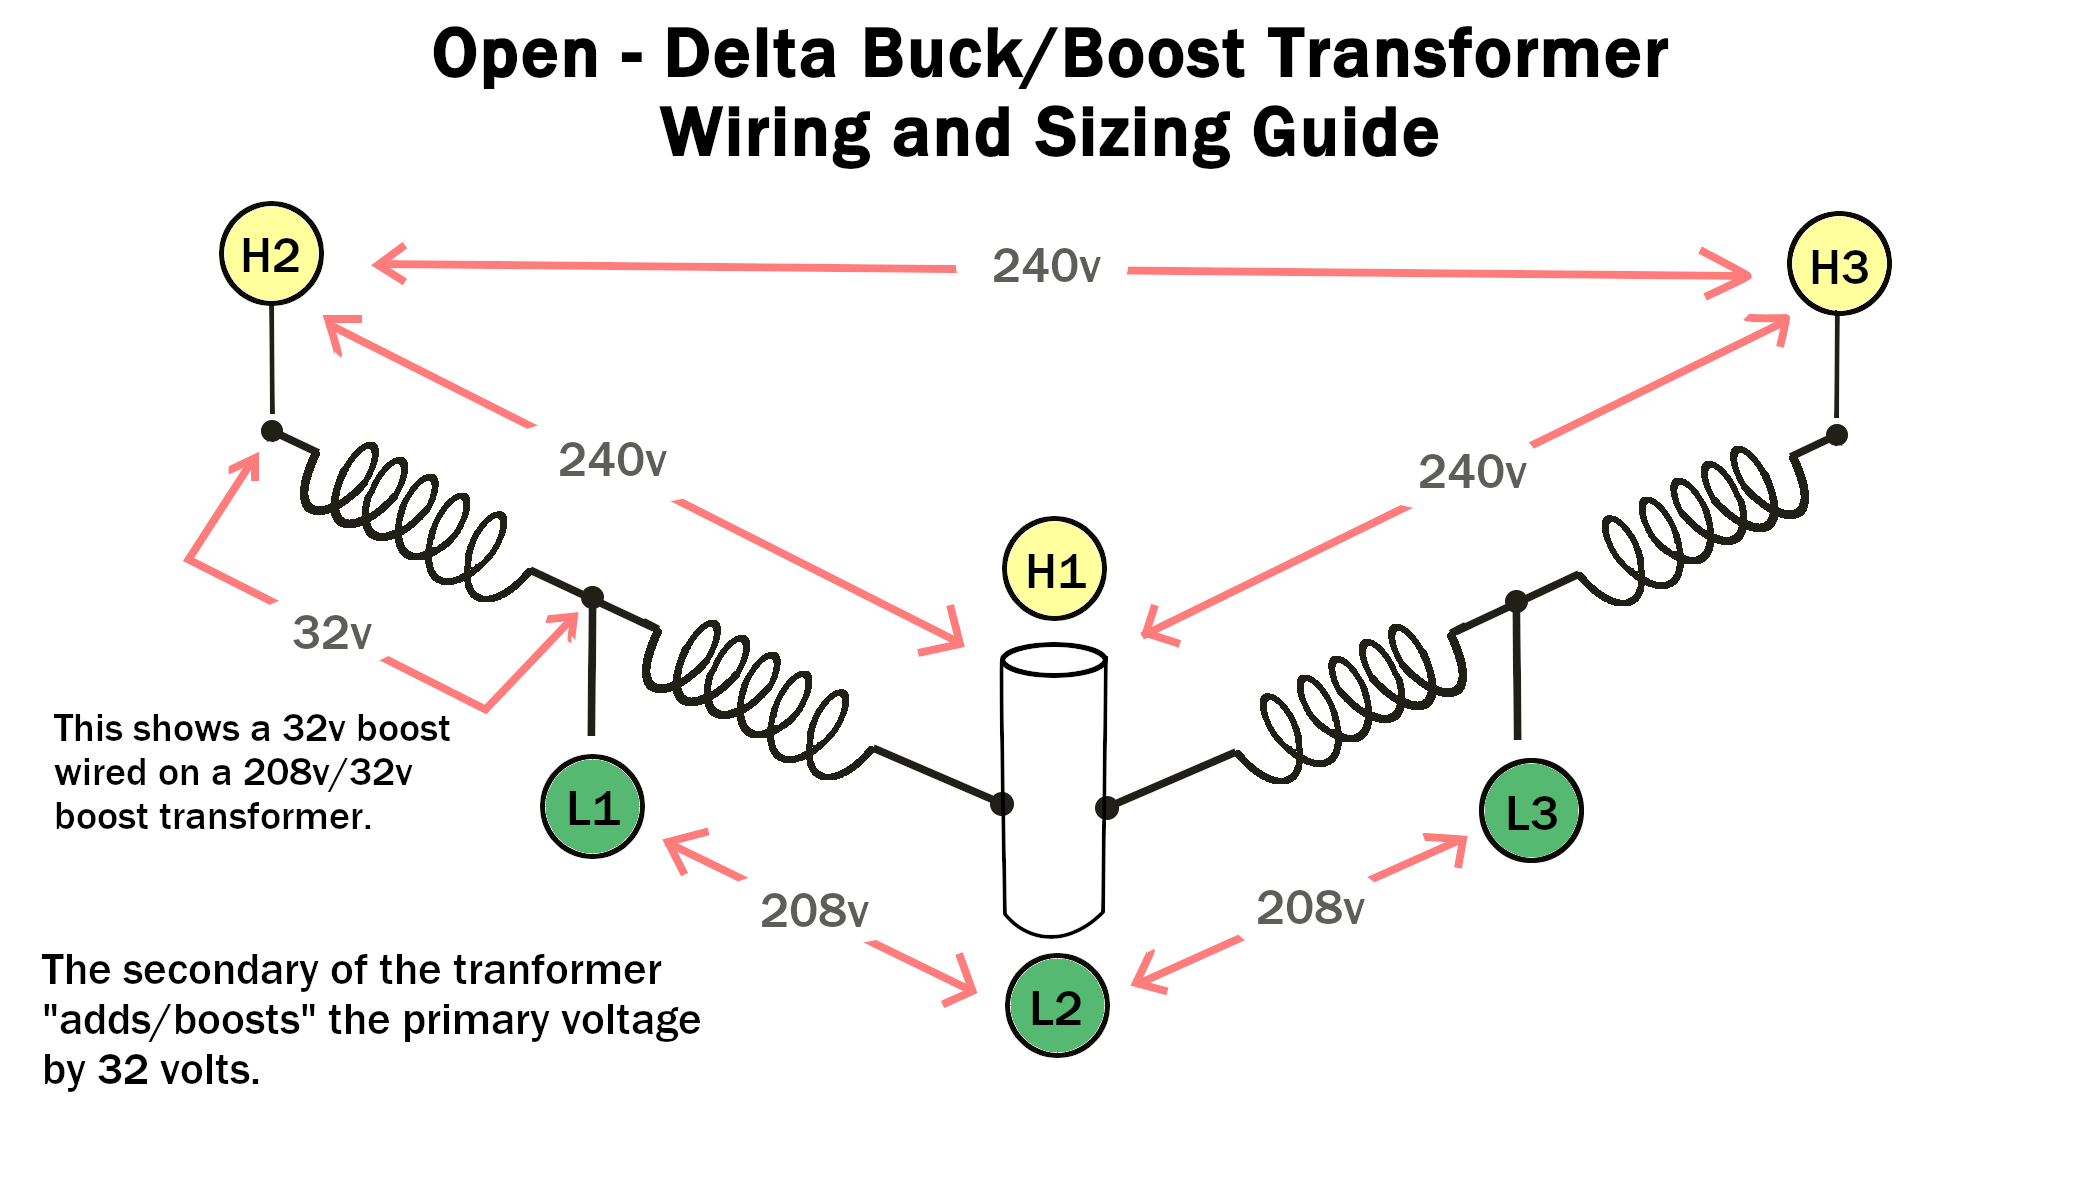 Square D Buck Boost Transformer Wiring Diagram from milnortechnicalsupport.force.com